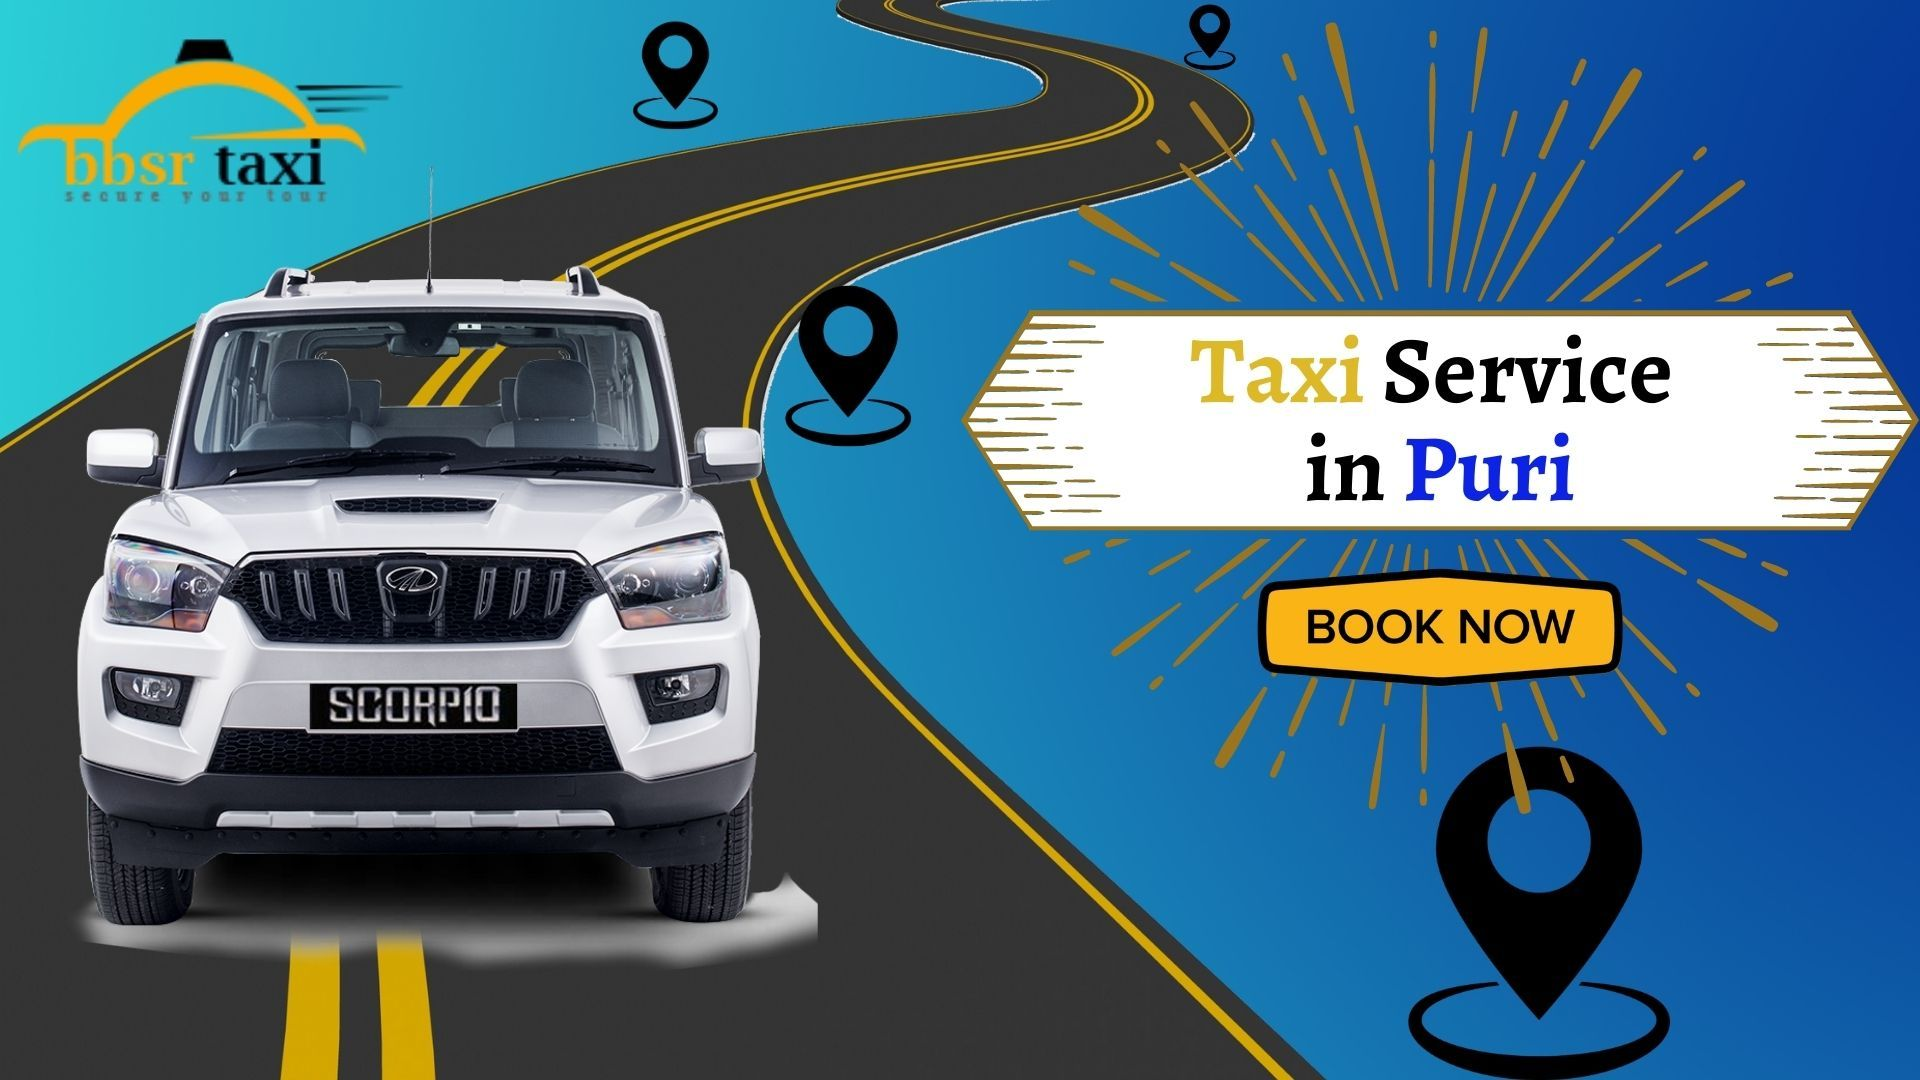 Bbsrtaxi provides cab and taxi service in Bhubaneswar. Book a best car and travel to Puri to experience the glory of Lord Jagannath. #Tour #Travel #Taxi_Service #Tour_package #Travel_Agency #cab_booking